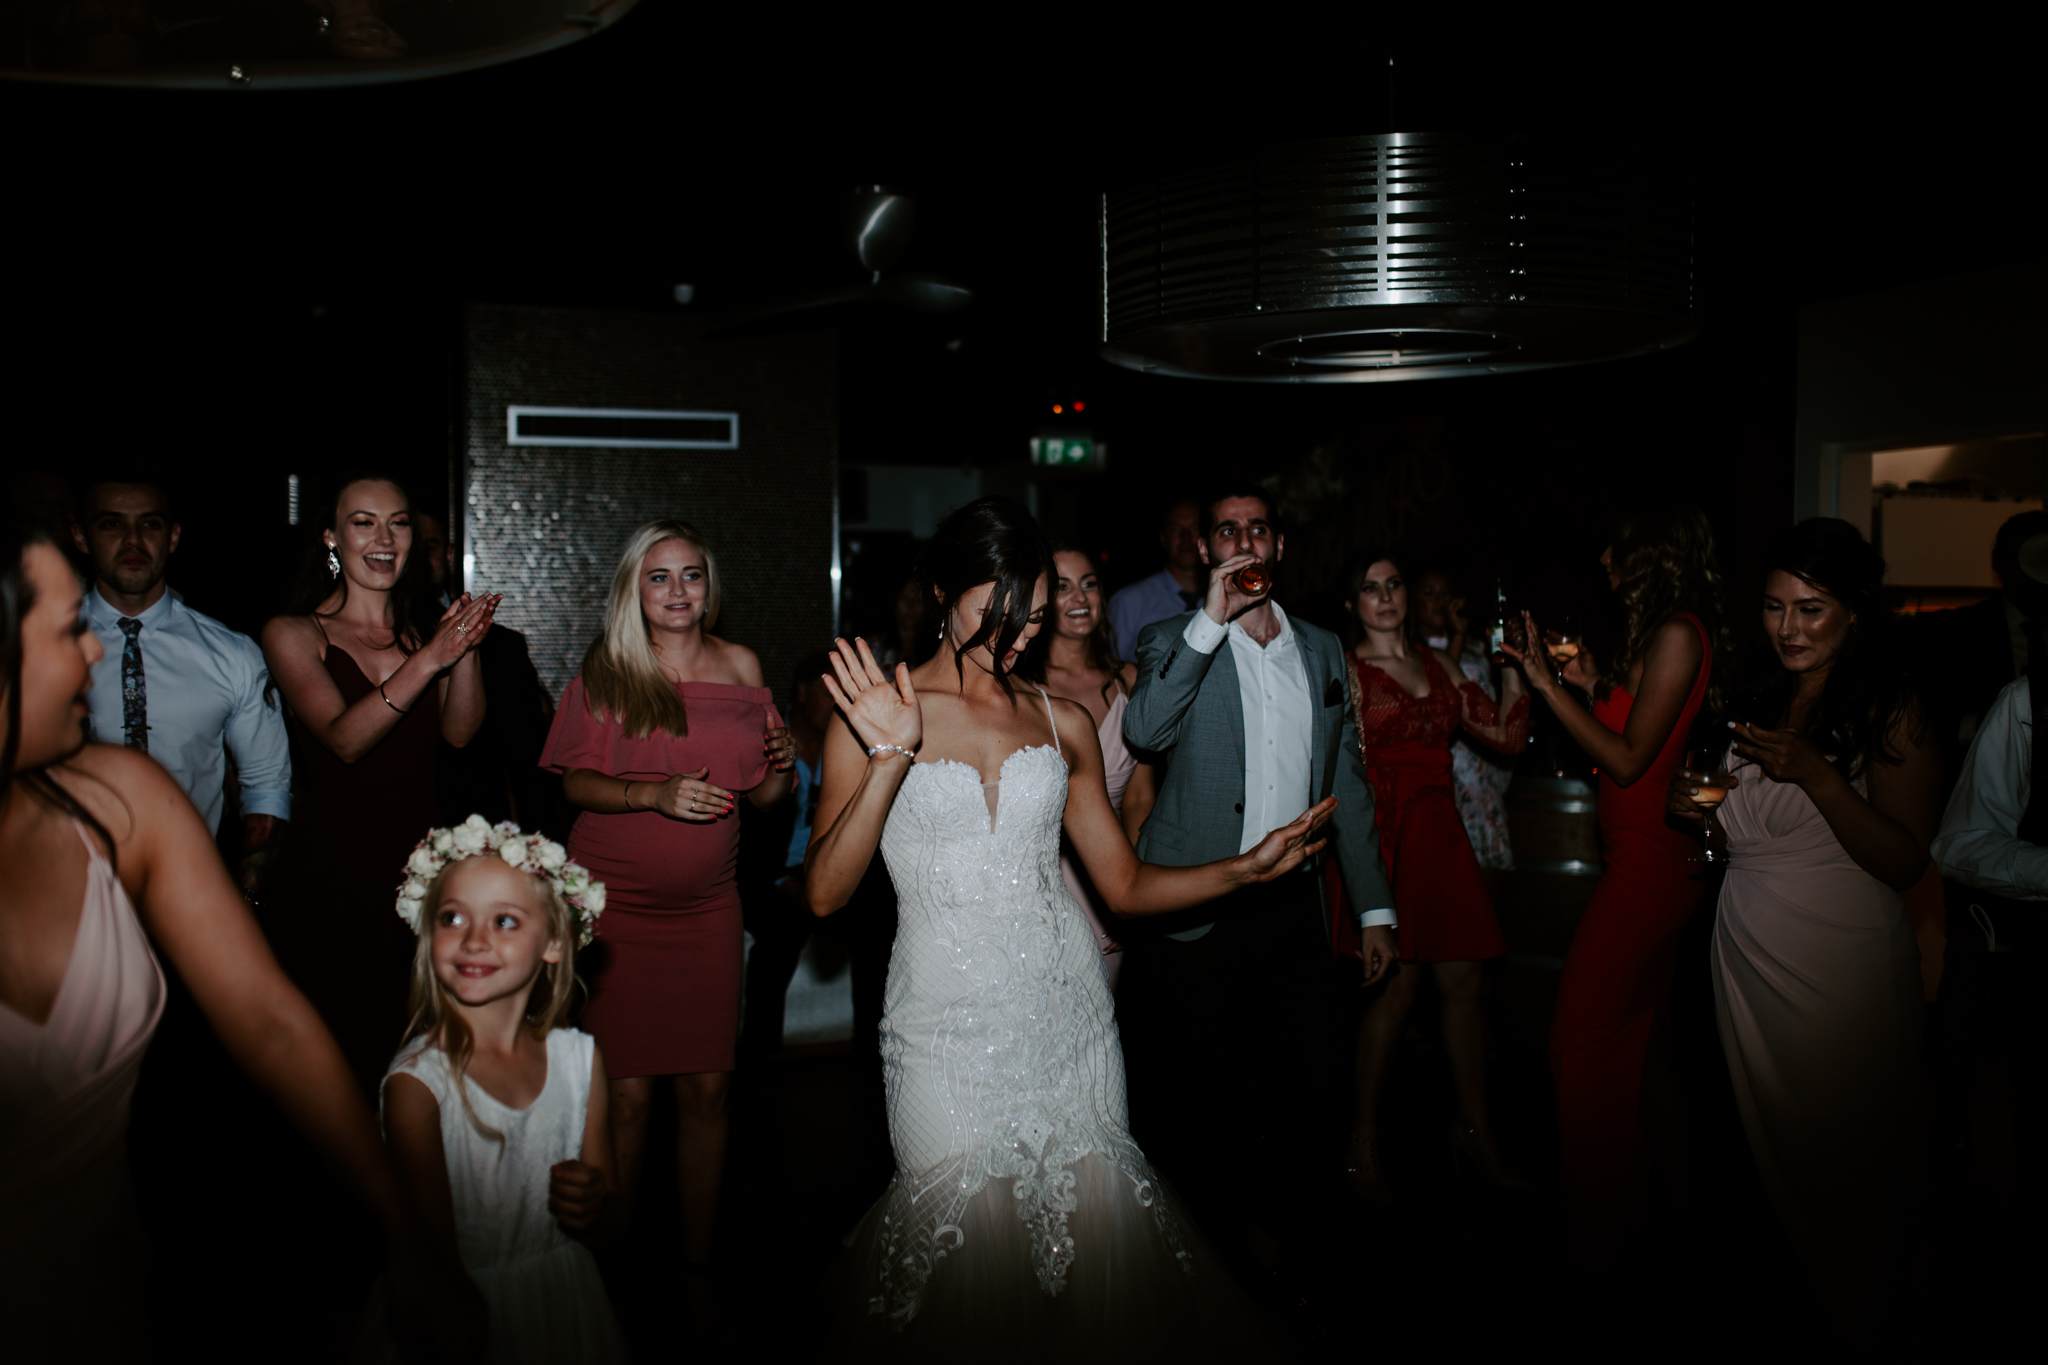 All-Smiles-Sorrento-wedding-emotionsandmath-173.jpg